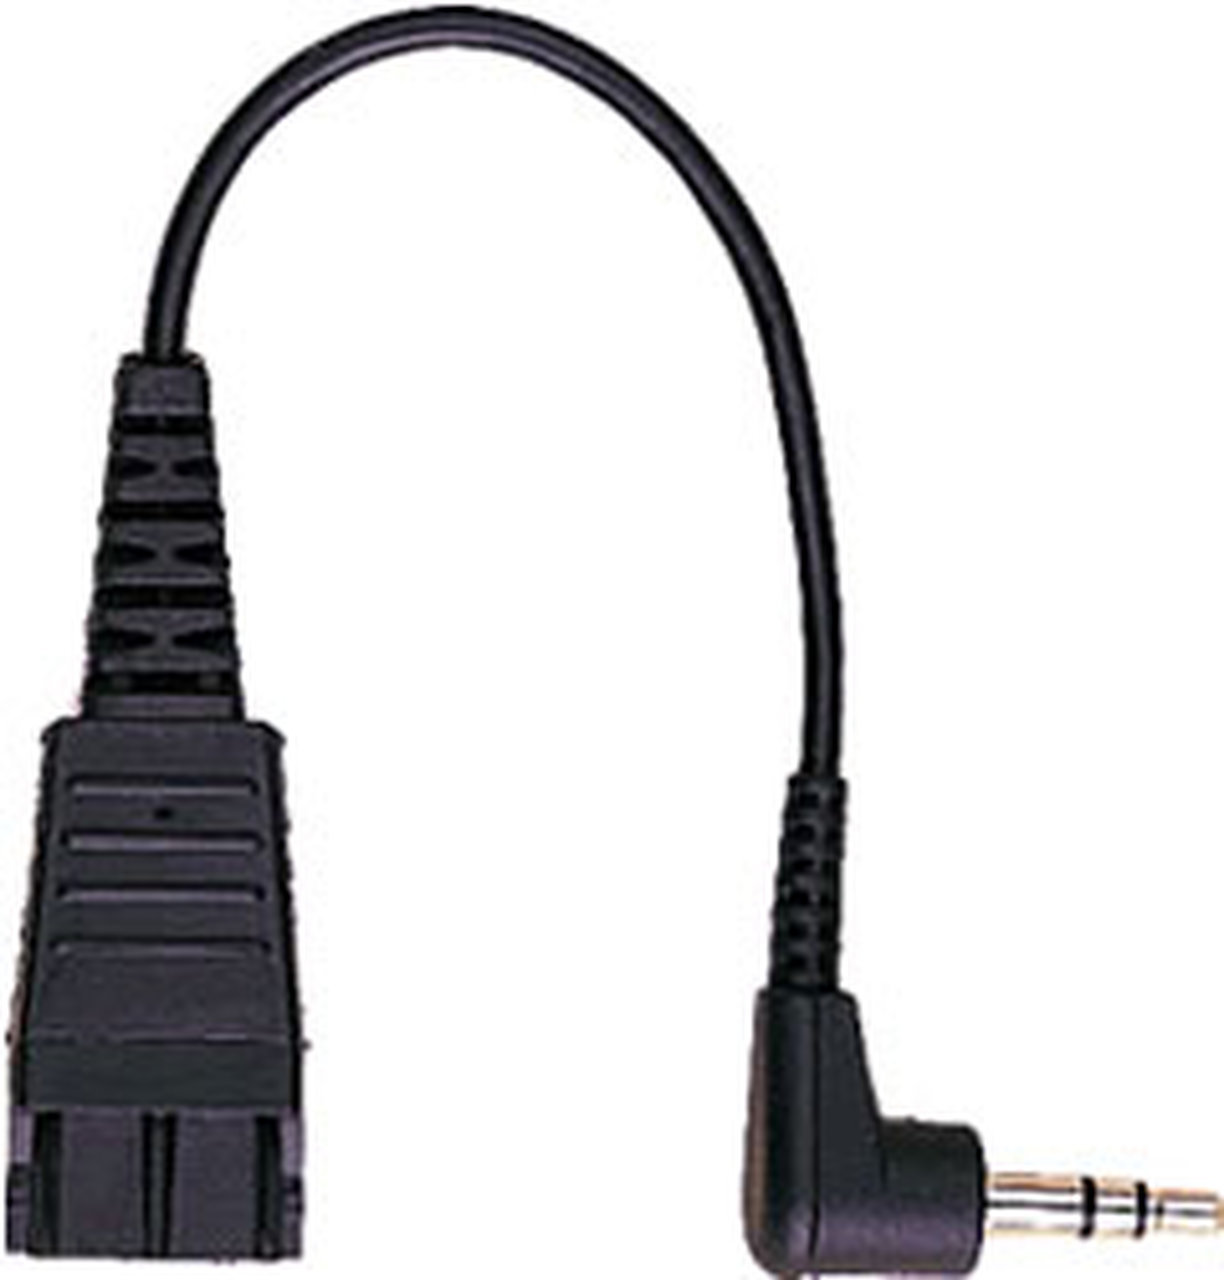 Jabra 2.5mm Headset Adapter QD Cable 8800-00-46